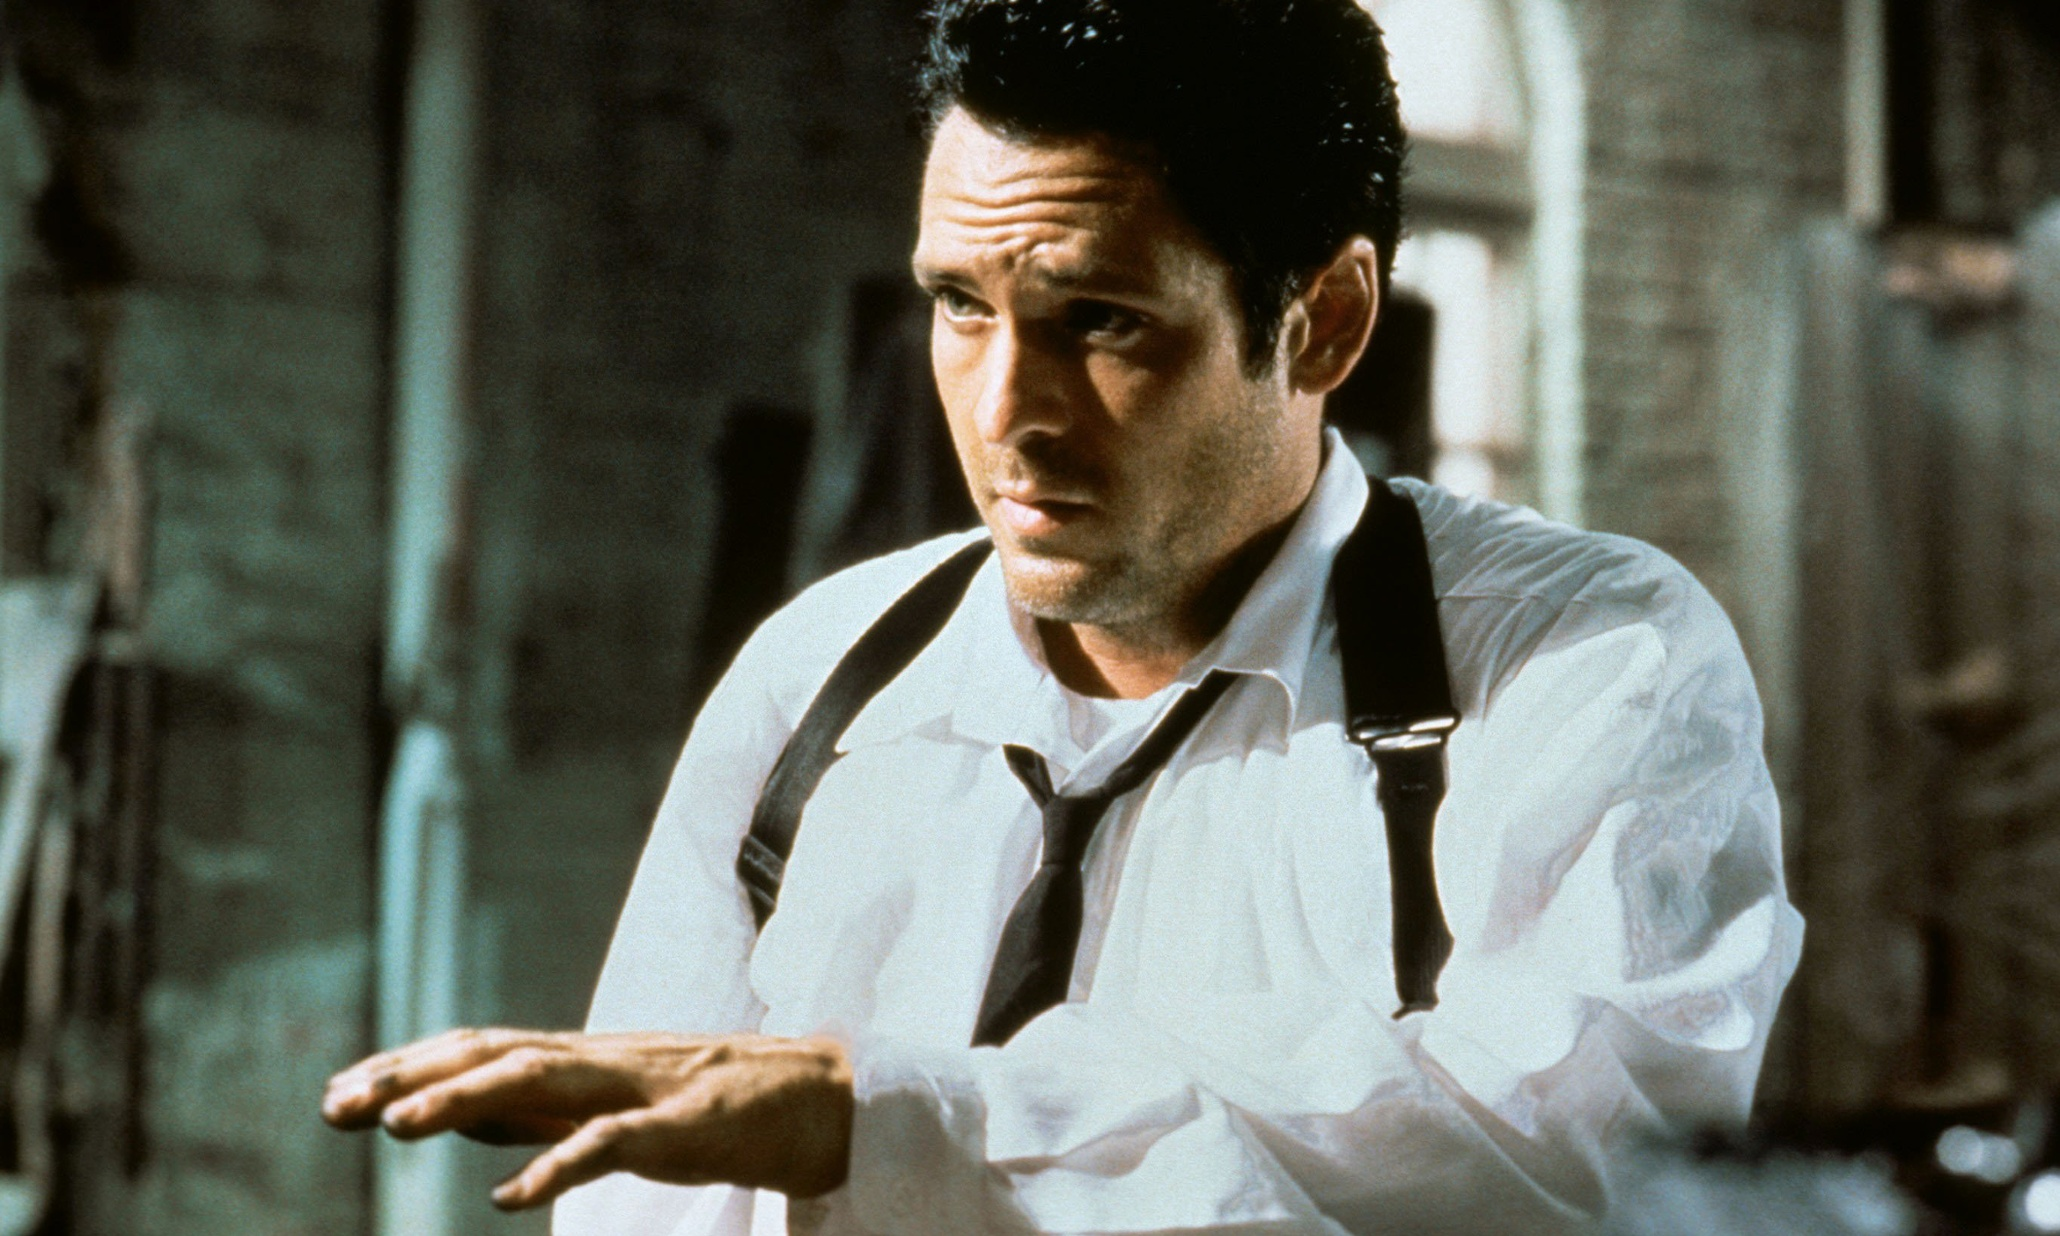 Michael-Madsen-Reservoir-Dogs actor